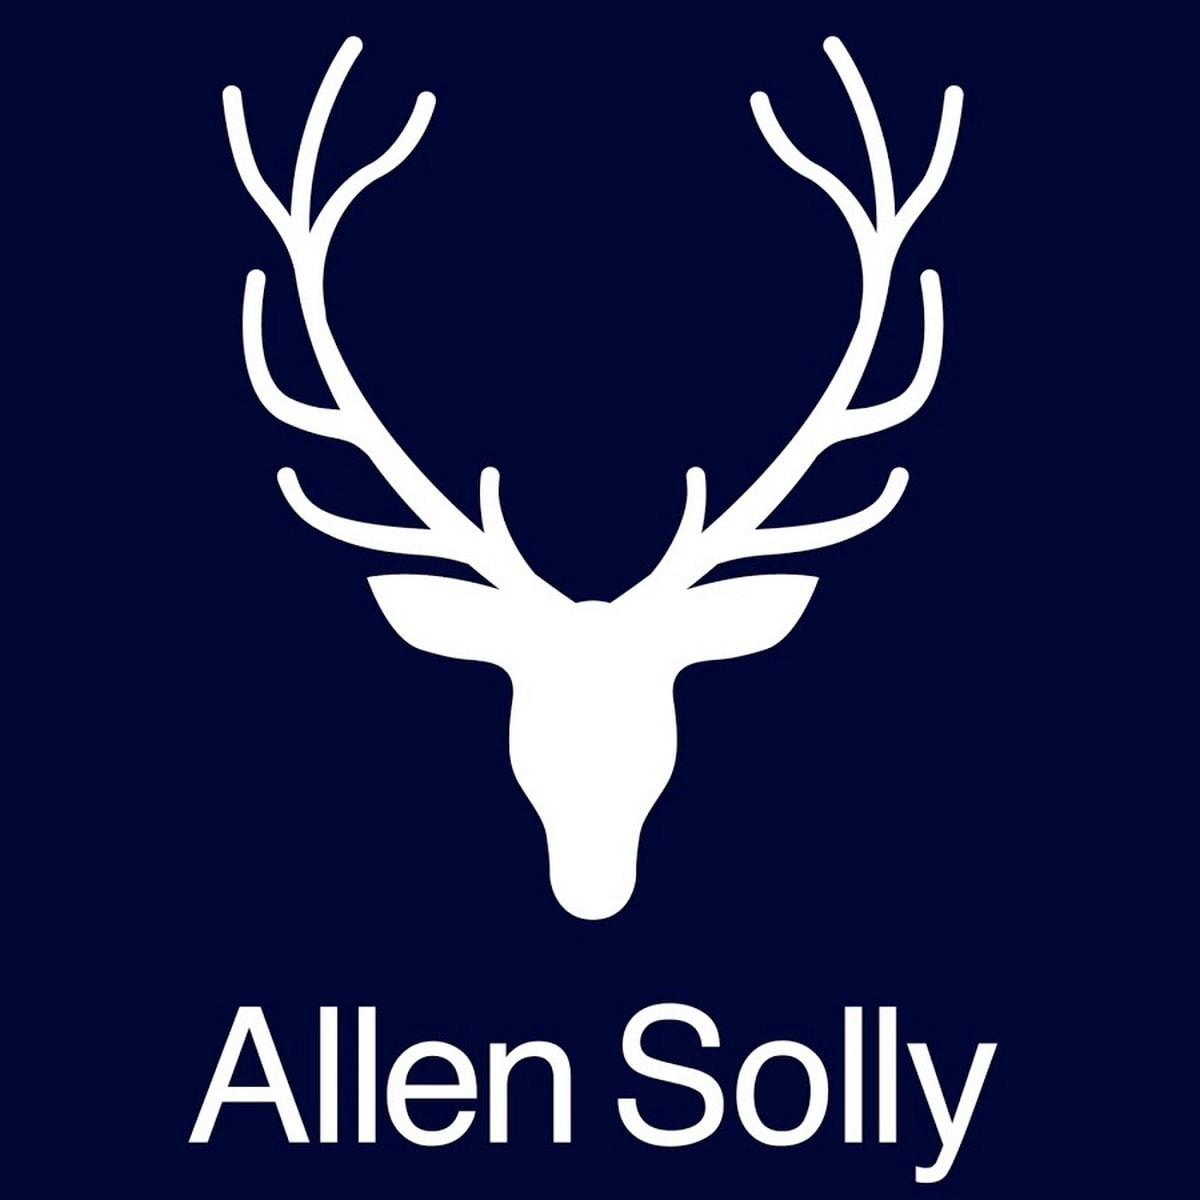 Marketing Mix of Allen Solly - 2